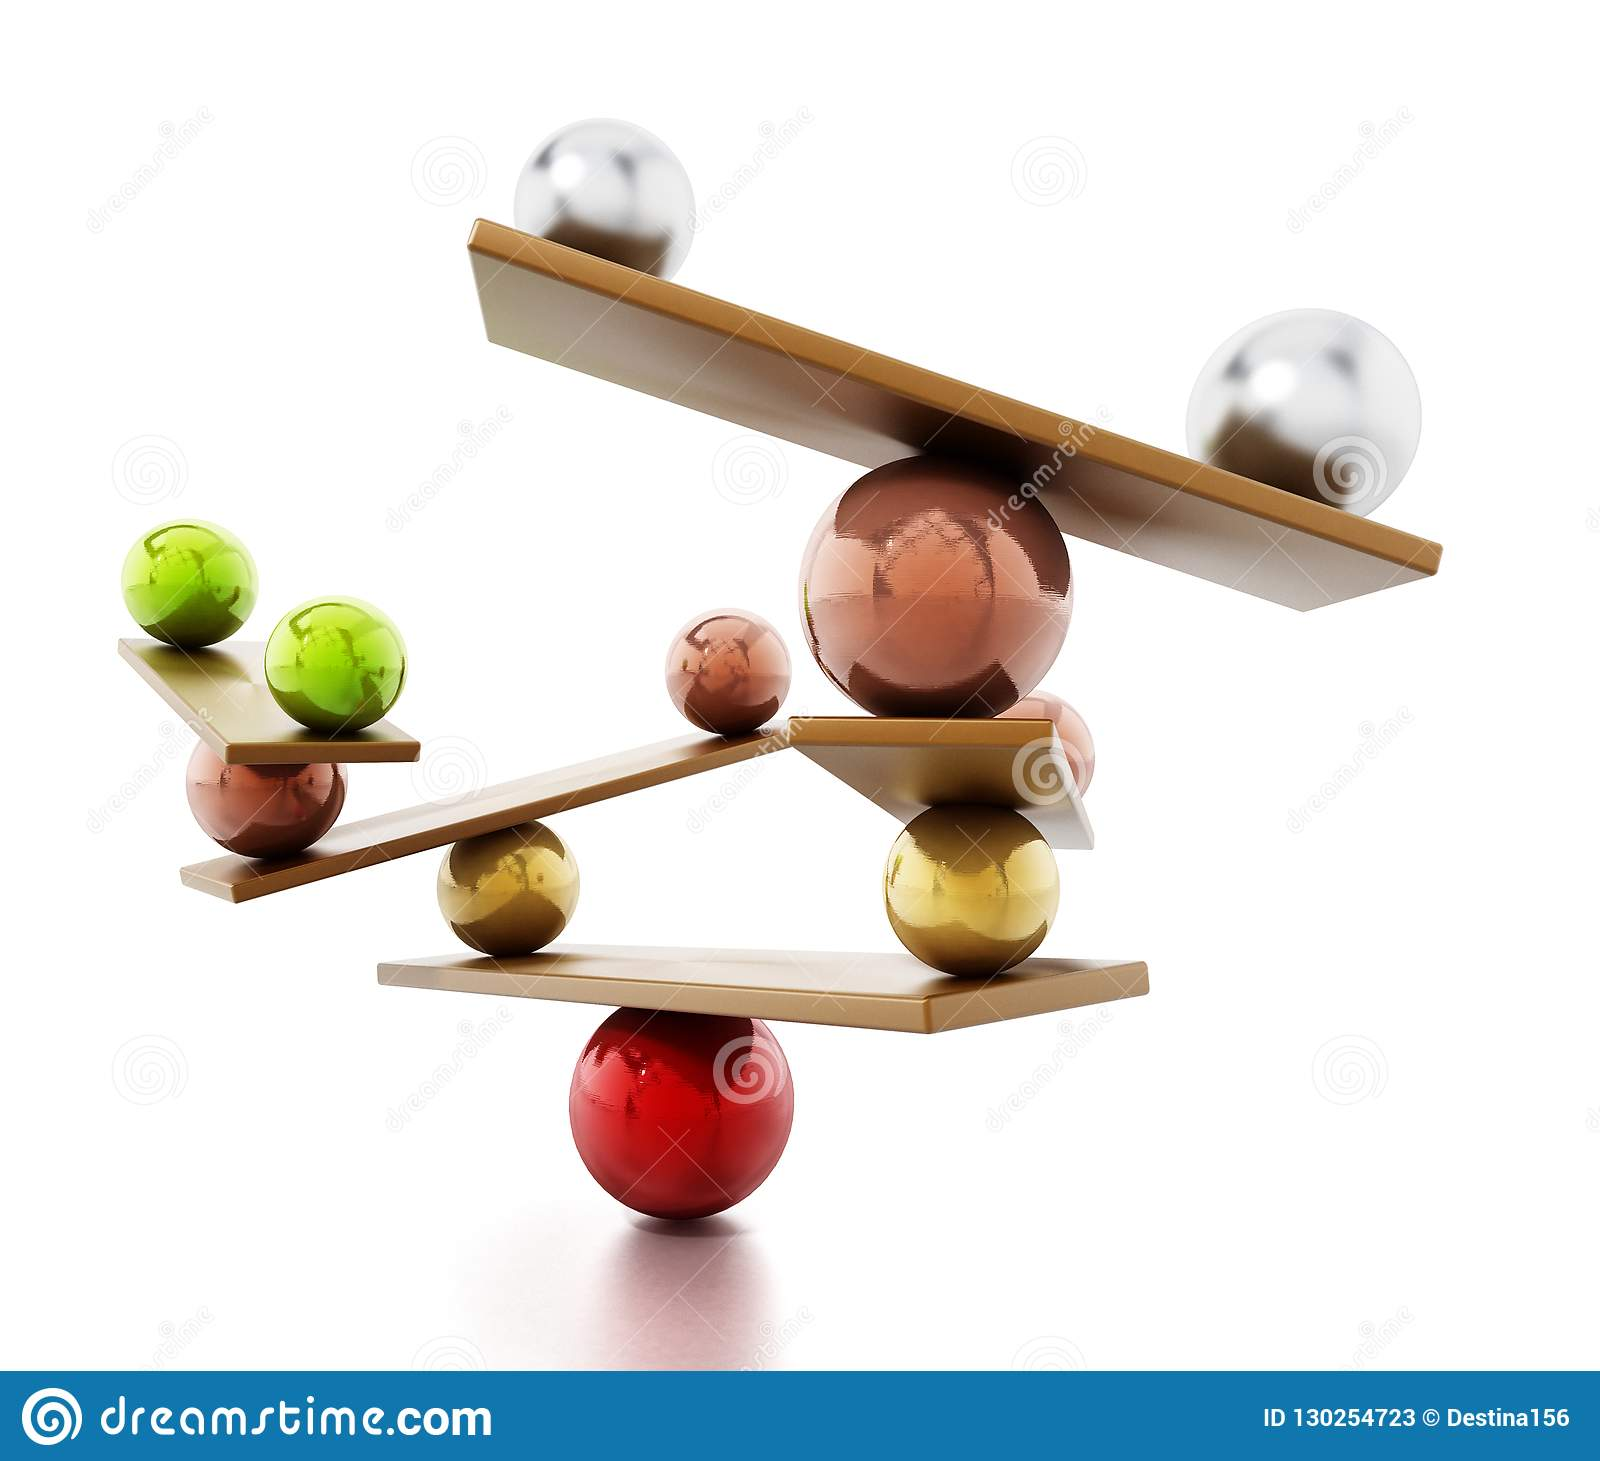 Balancing spheres standing in balance on seesaws. 3D illustration